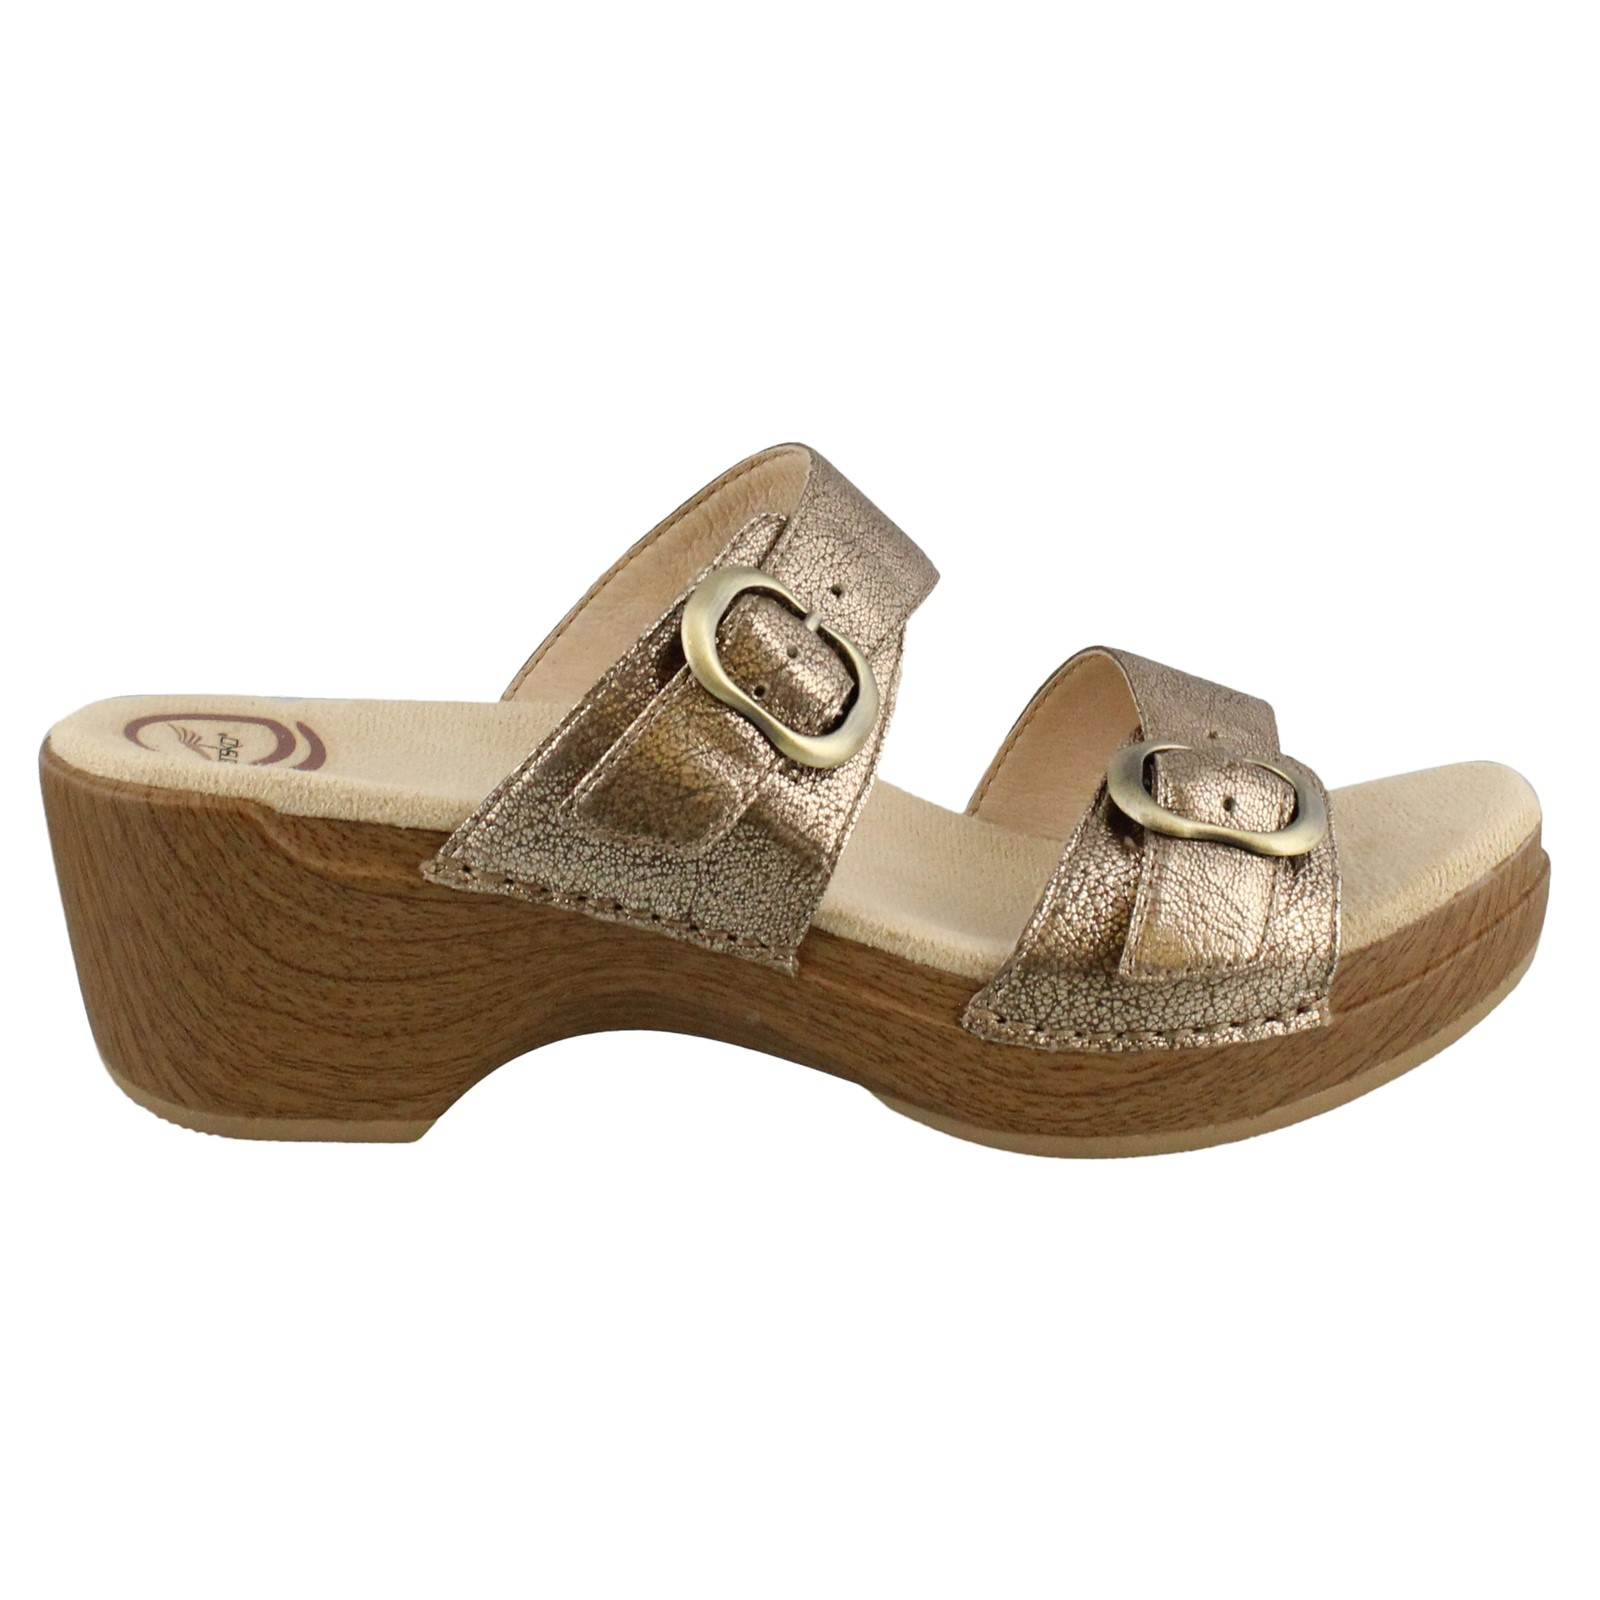 Women's Dansko, Sophie two band slide Sandals